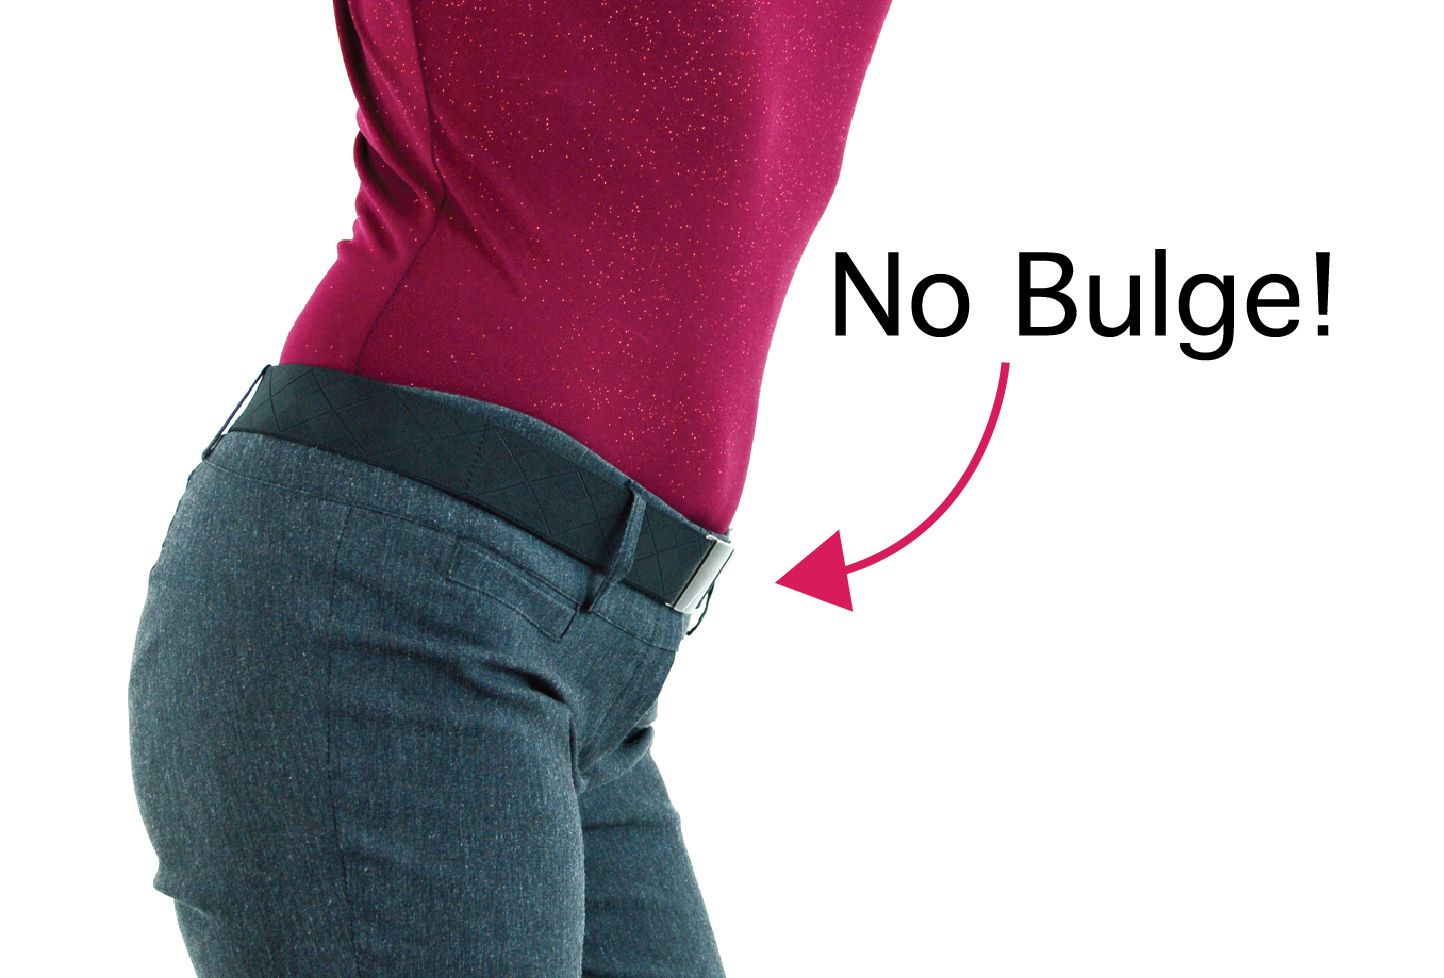 Finally! A belt with a flat buckle! This belt is made from